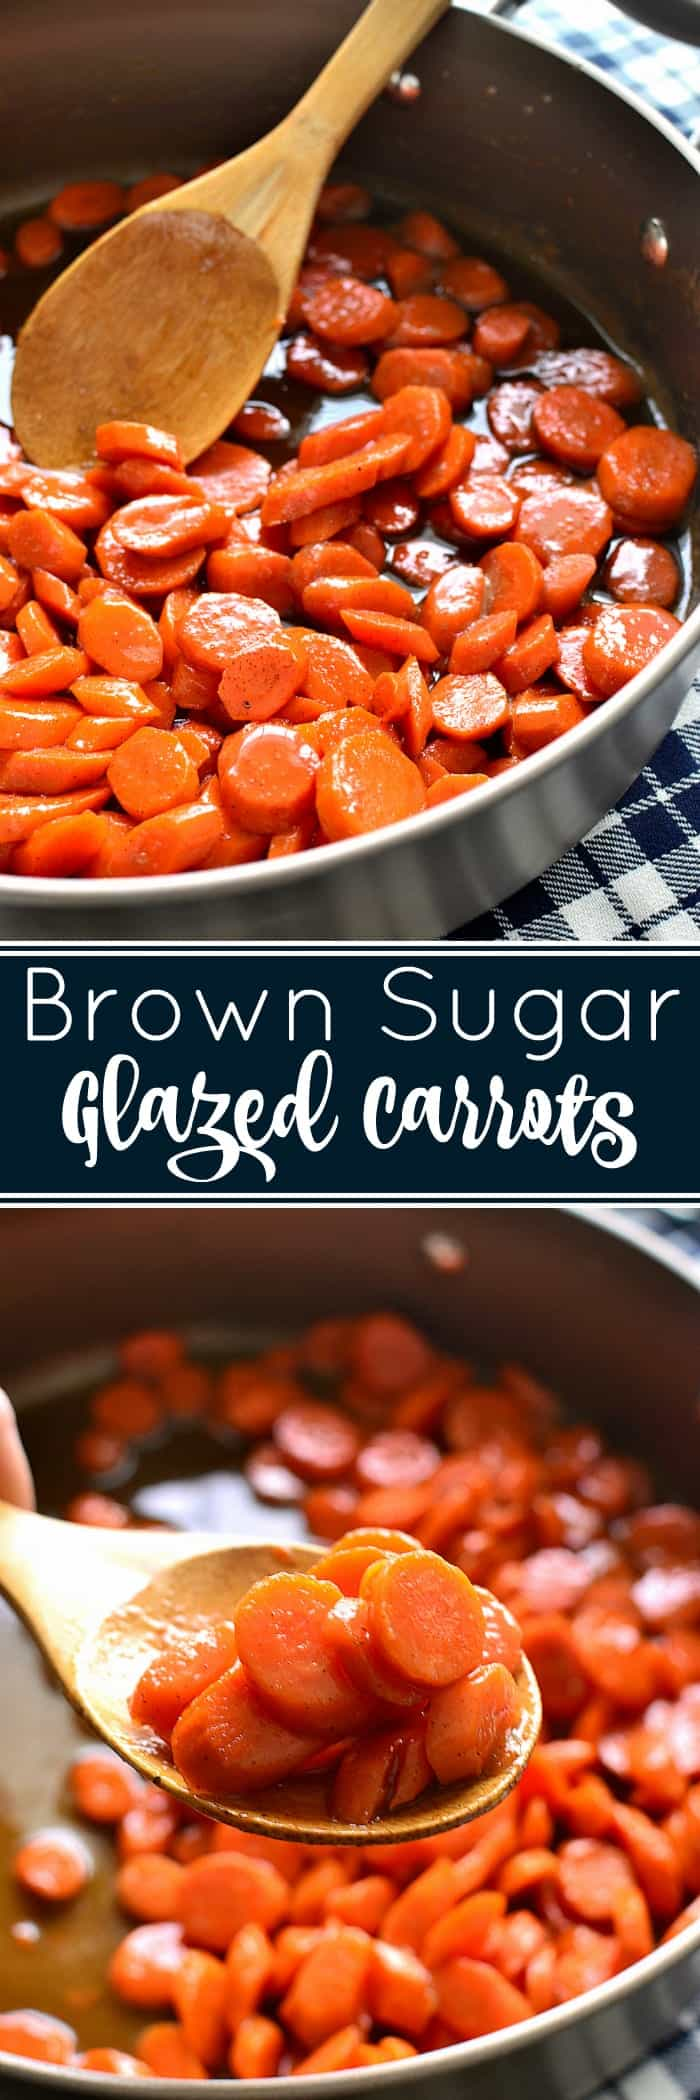 These Brown Sugar Glazed Carrots take carrots to a whole new level! Made with just 4 delicious ingredients, they come together quickly and make the perfect holiday side dish!